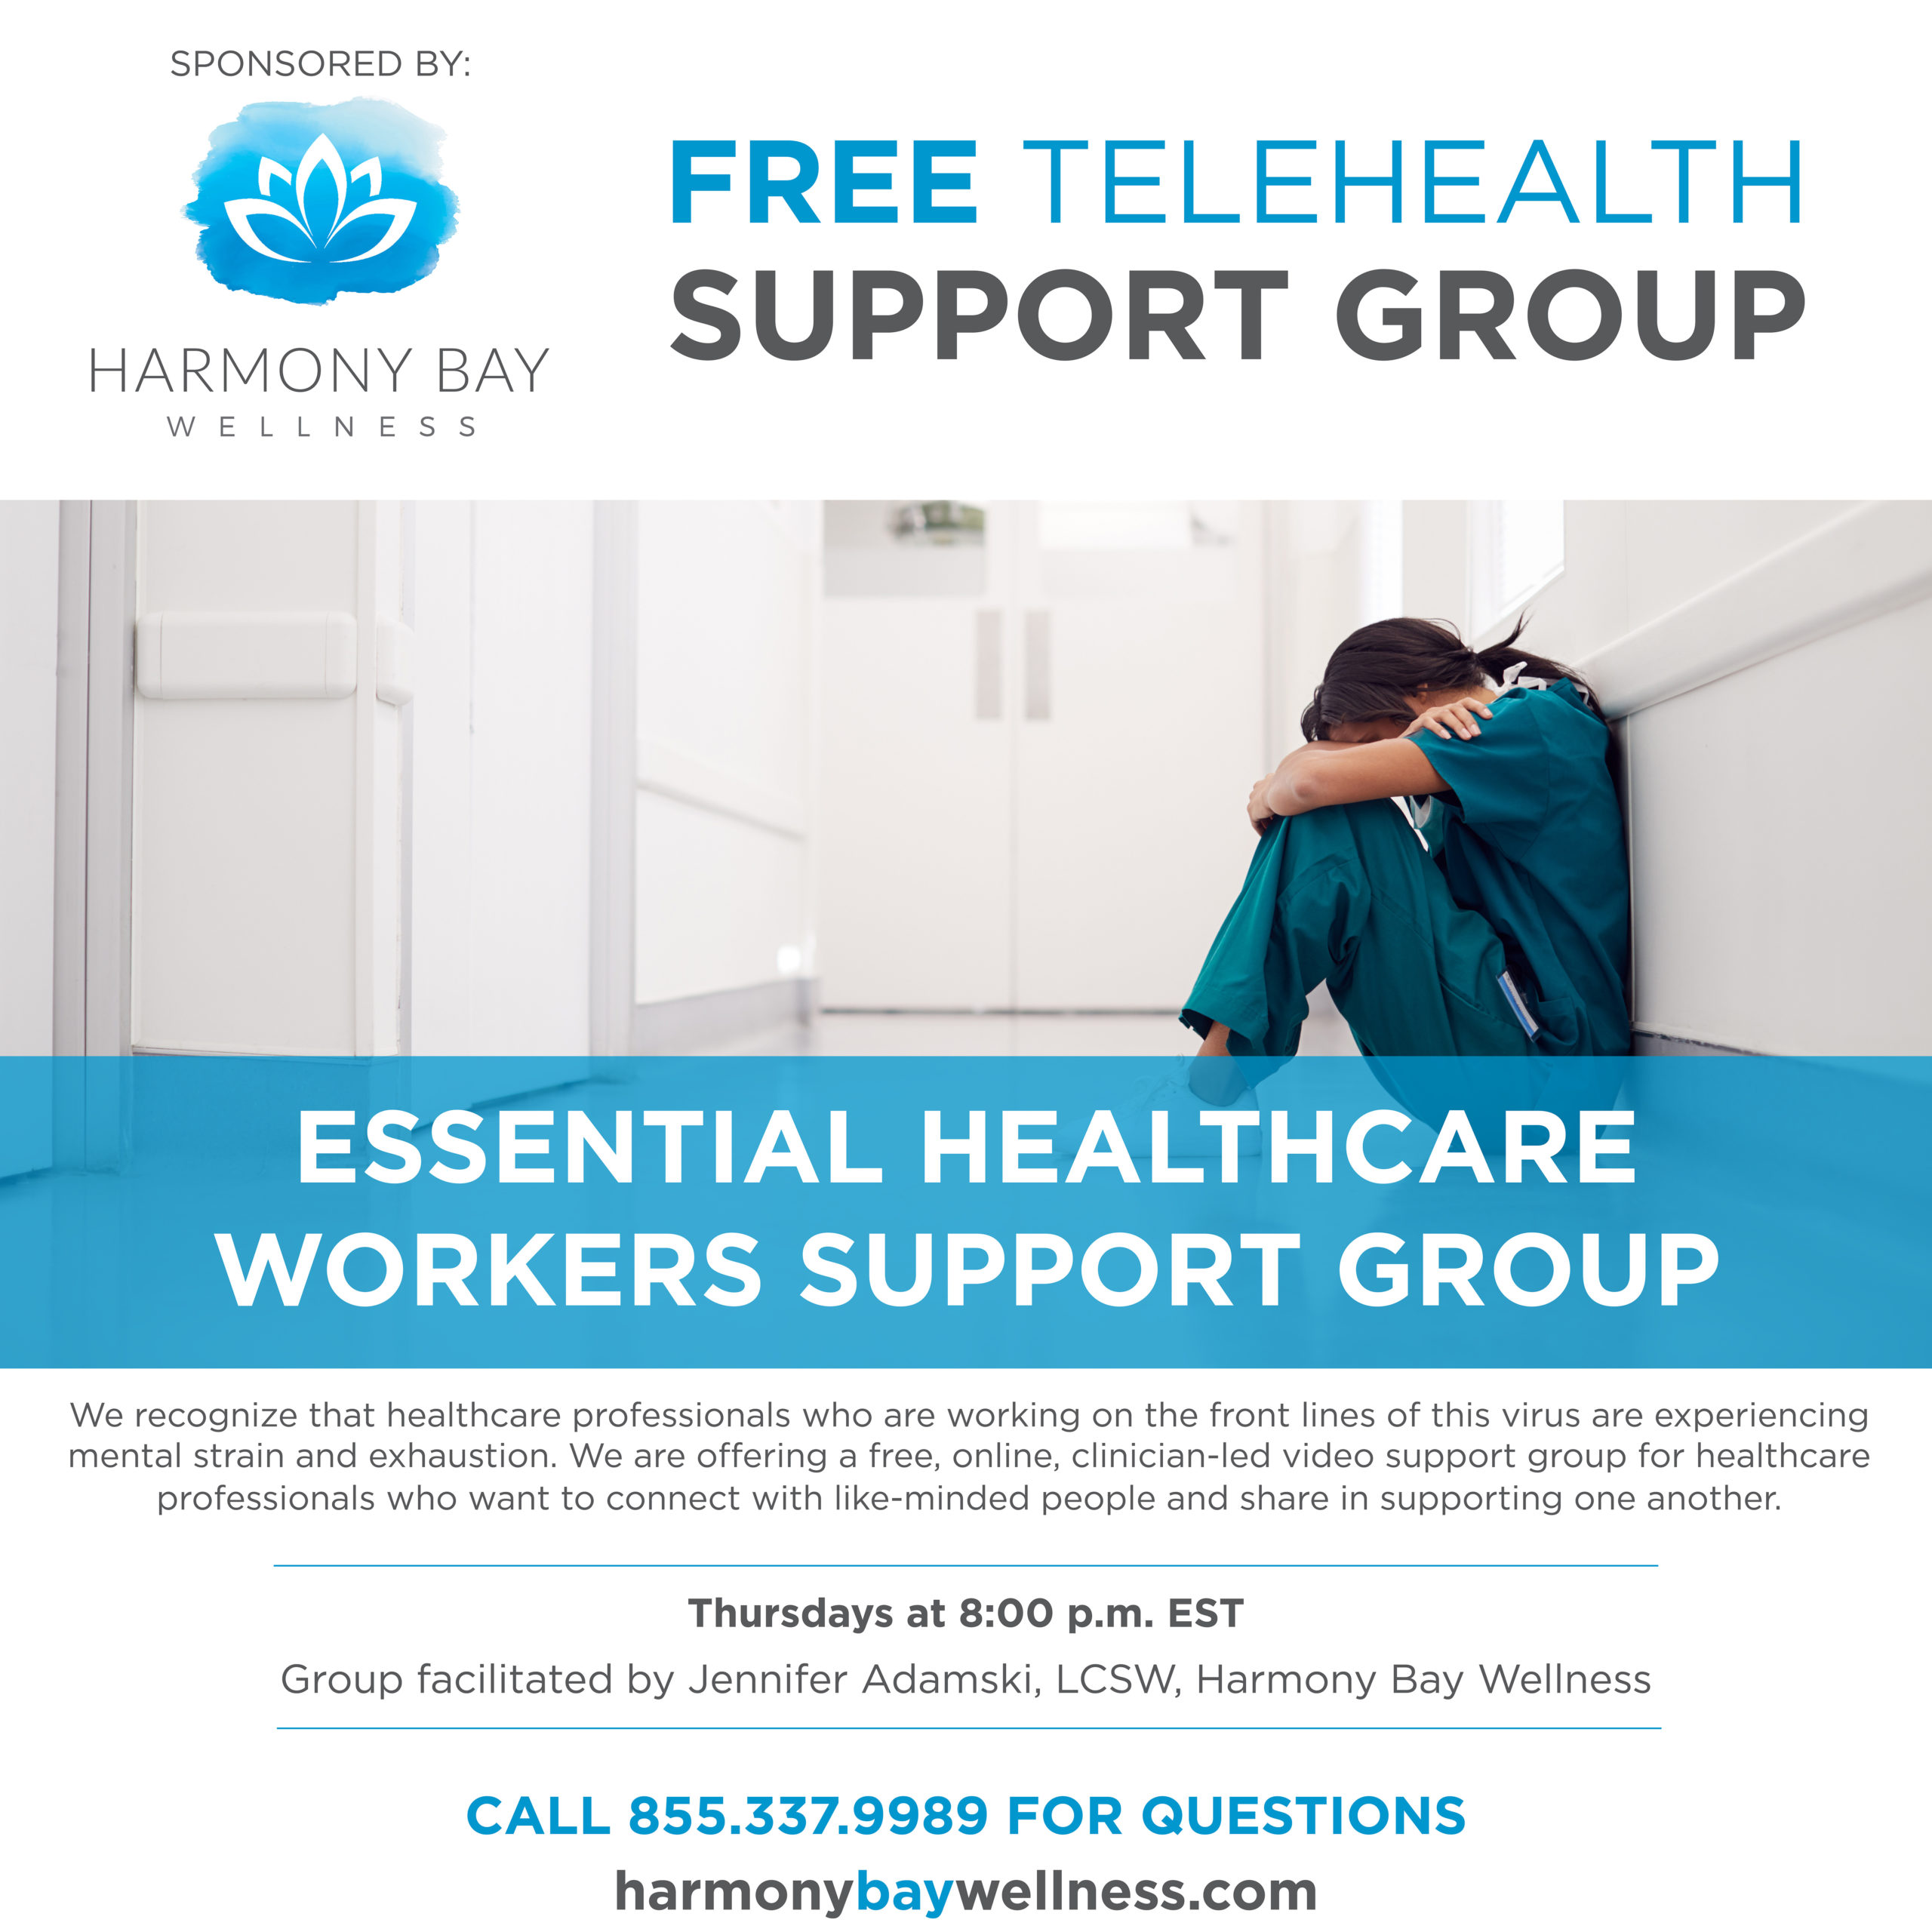 essential healthcare workers support group